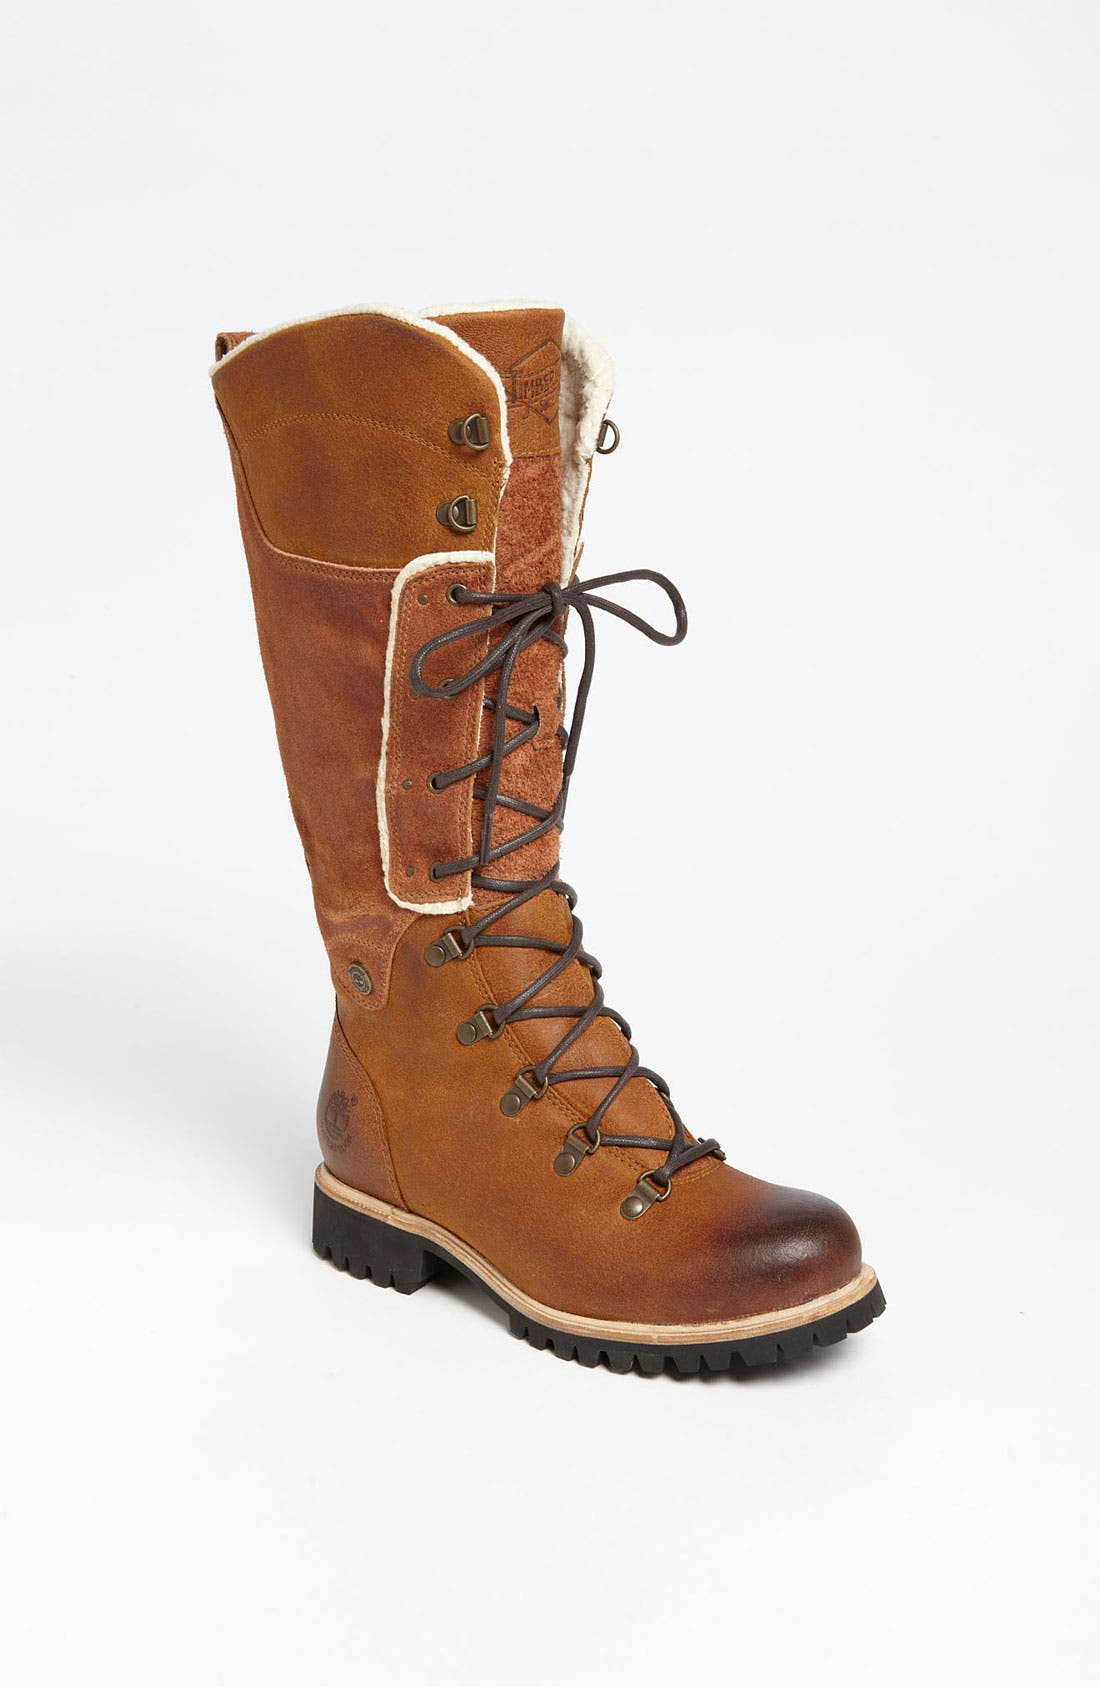 Alternate Image 1 Selected - TIMBERLAND ALPINE HIKER HIGH